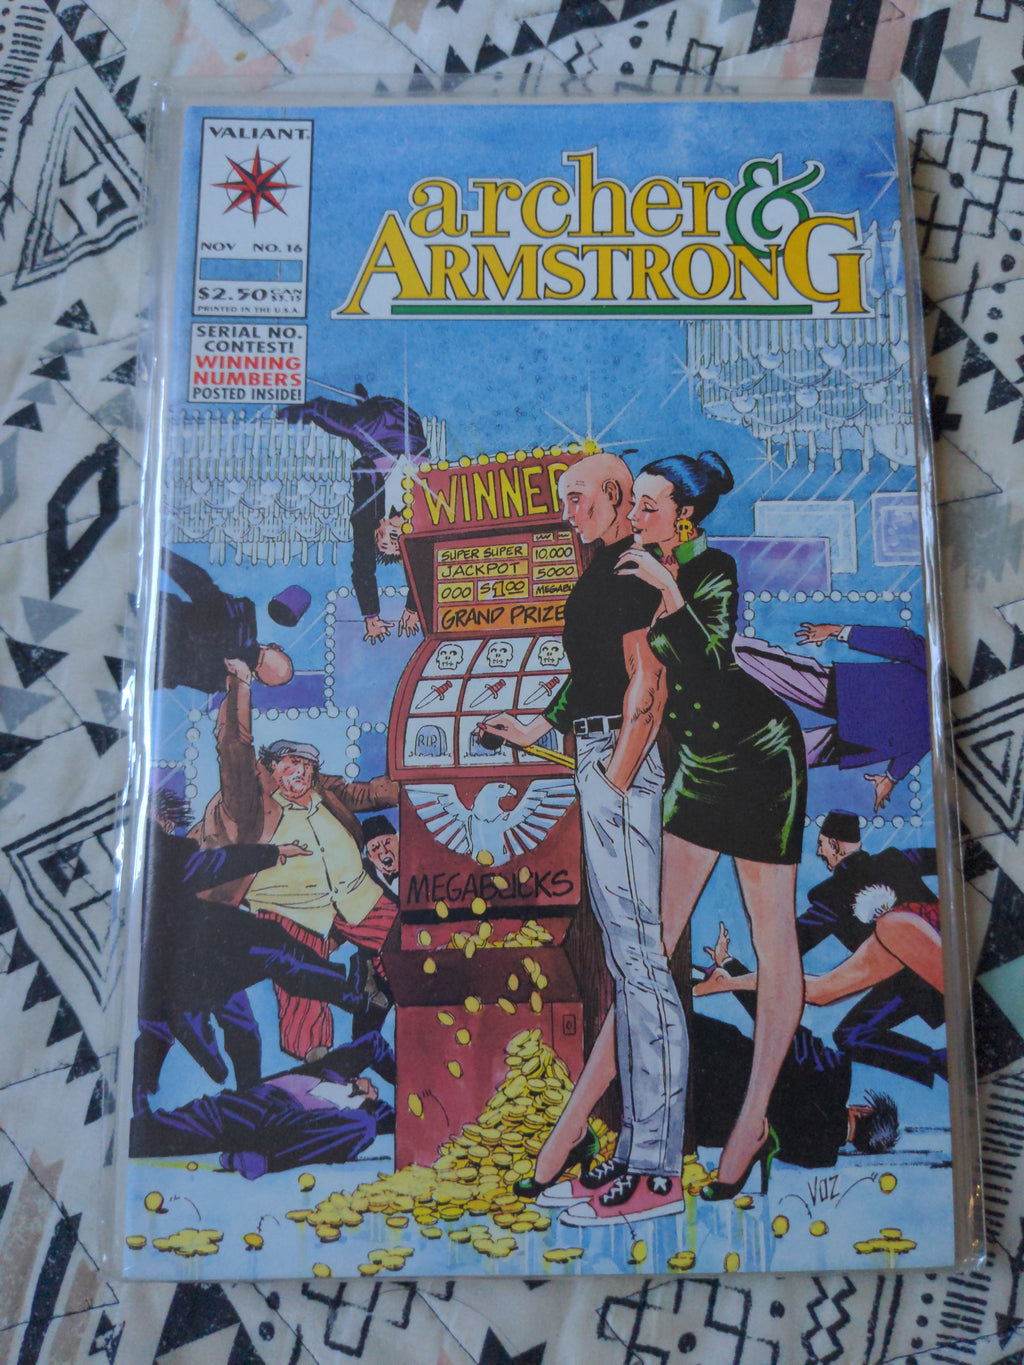 Archer & Armstrong #16 - Valiant Comics